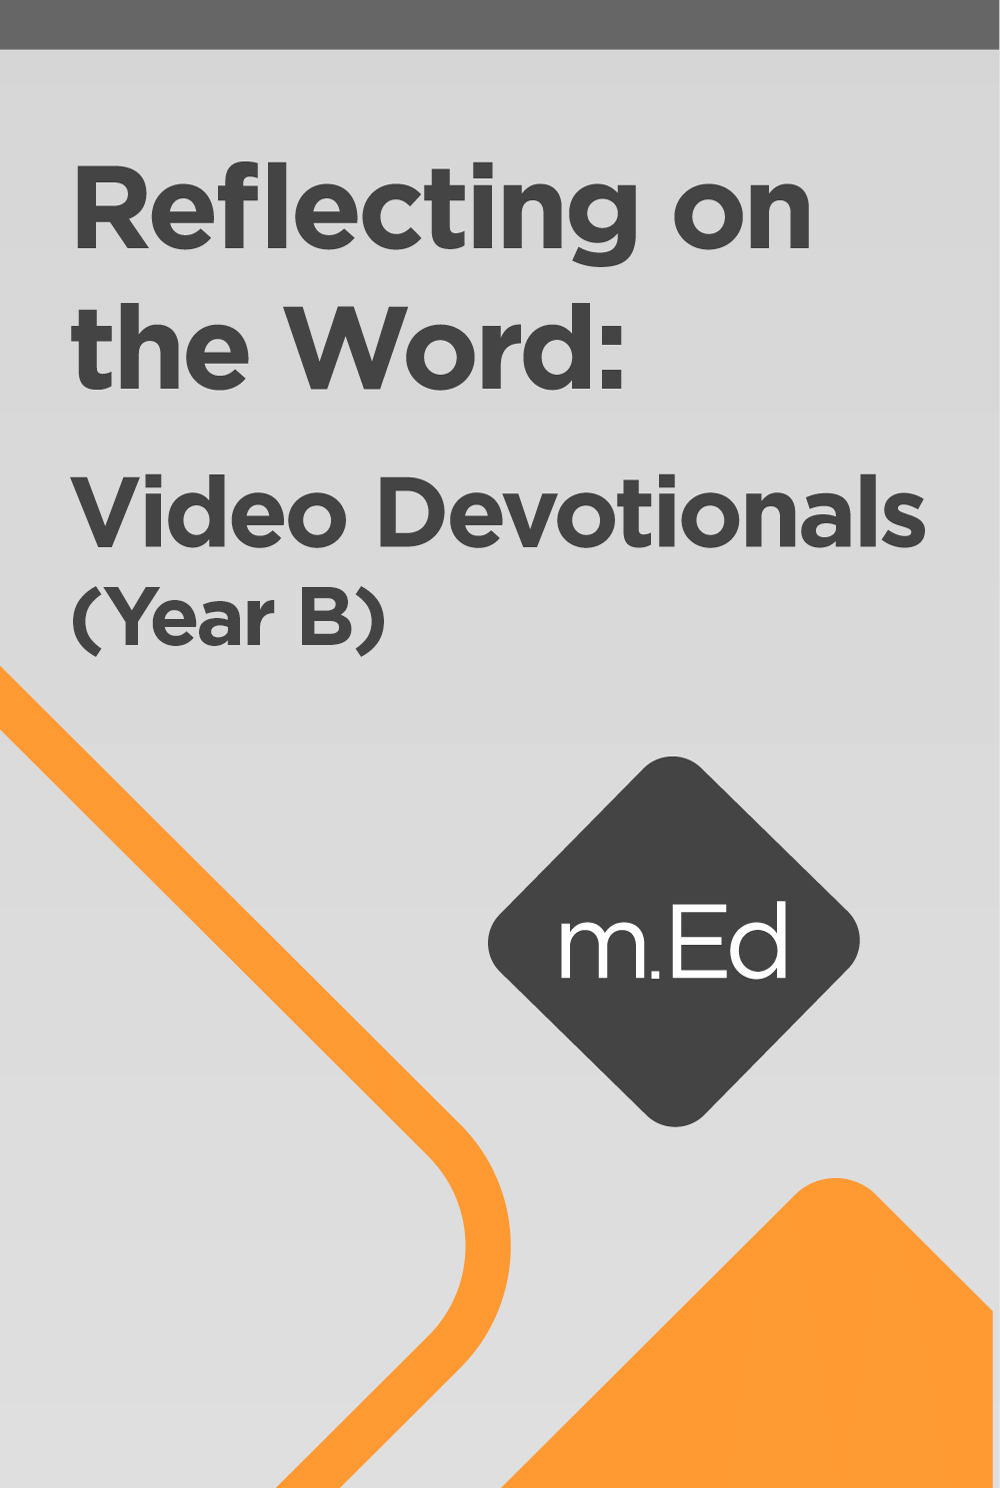 Mobile Ed: Reflecting on the Word: Video Devotionals (Year B)